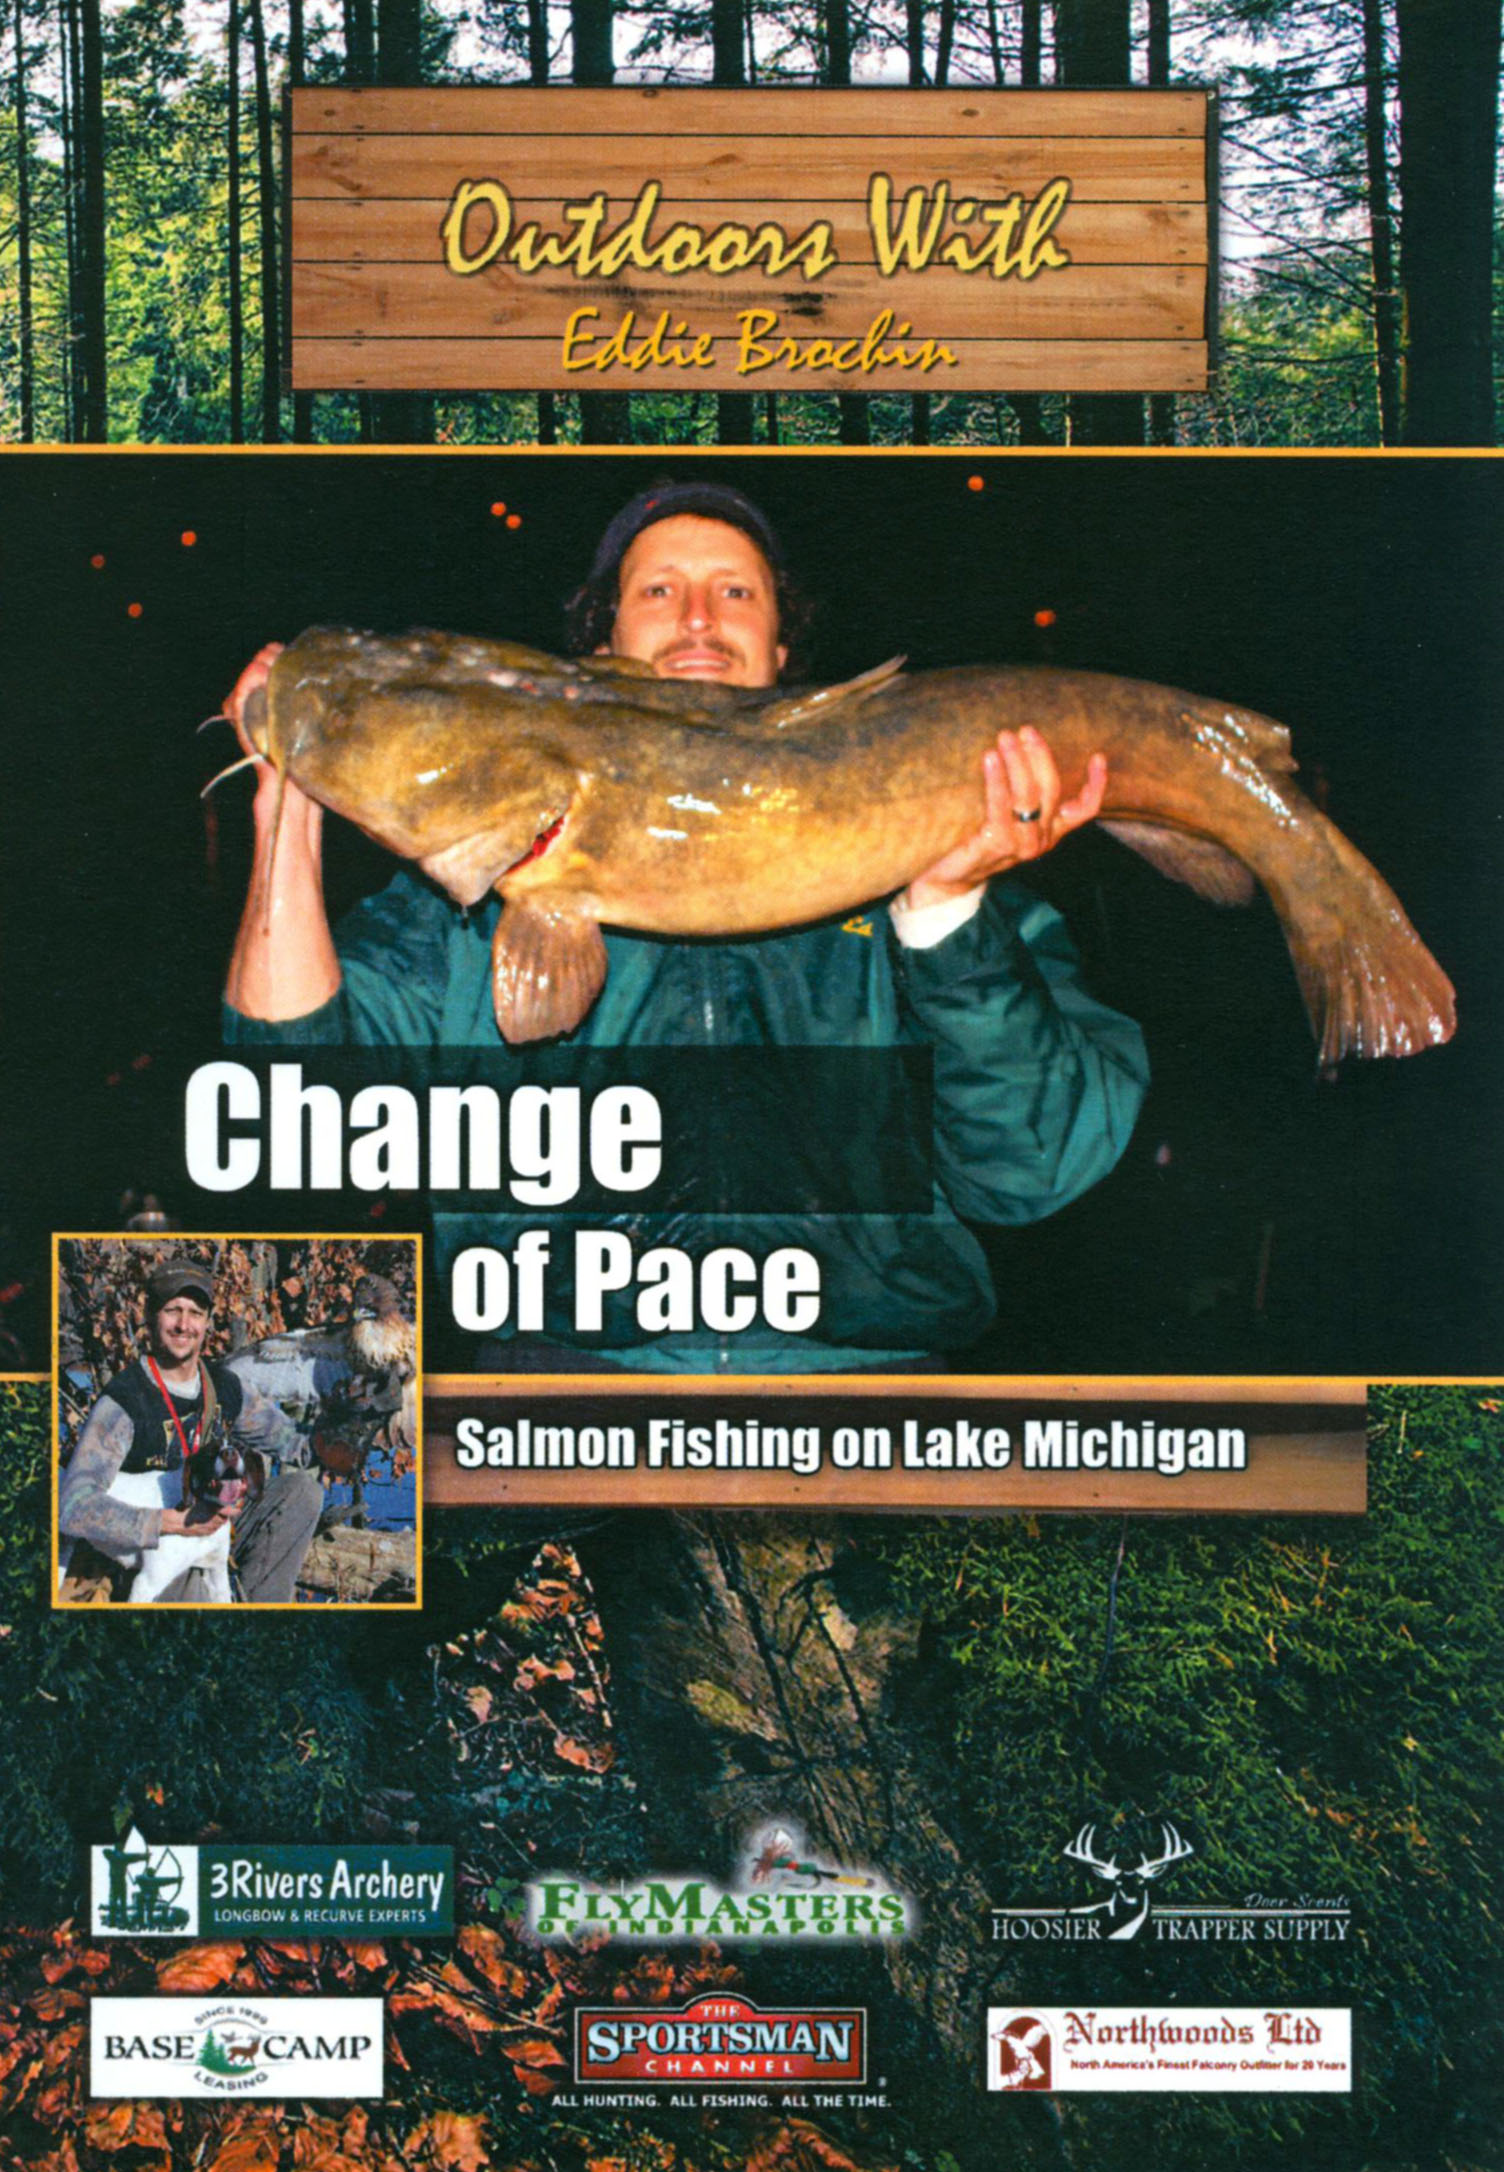 Outdoors With Eddie Brochin: Change of Pace